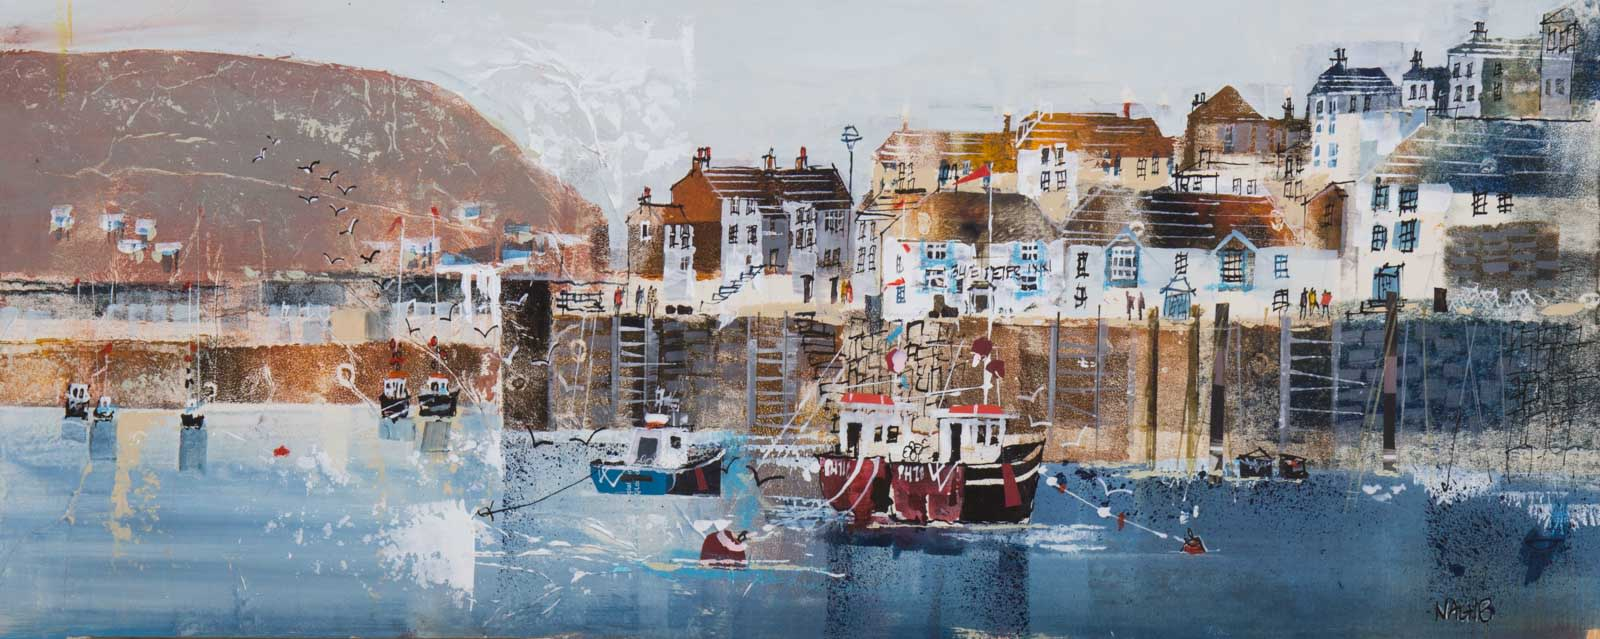 A Stroll Around The Harbour, Polperro